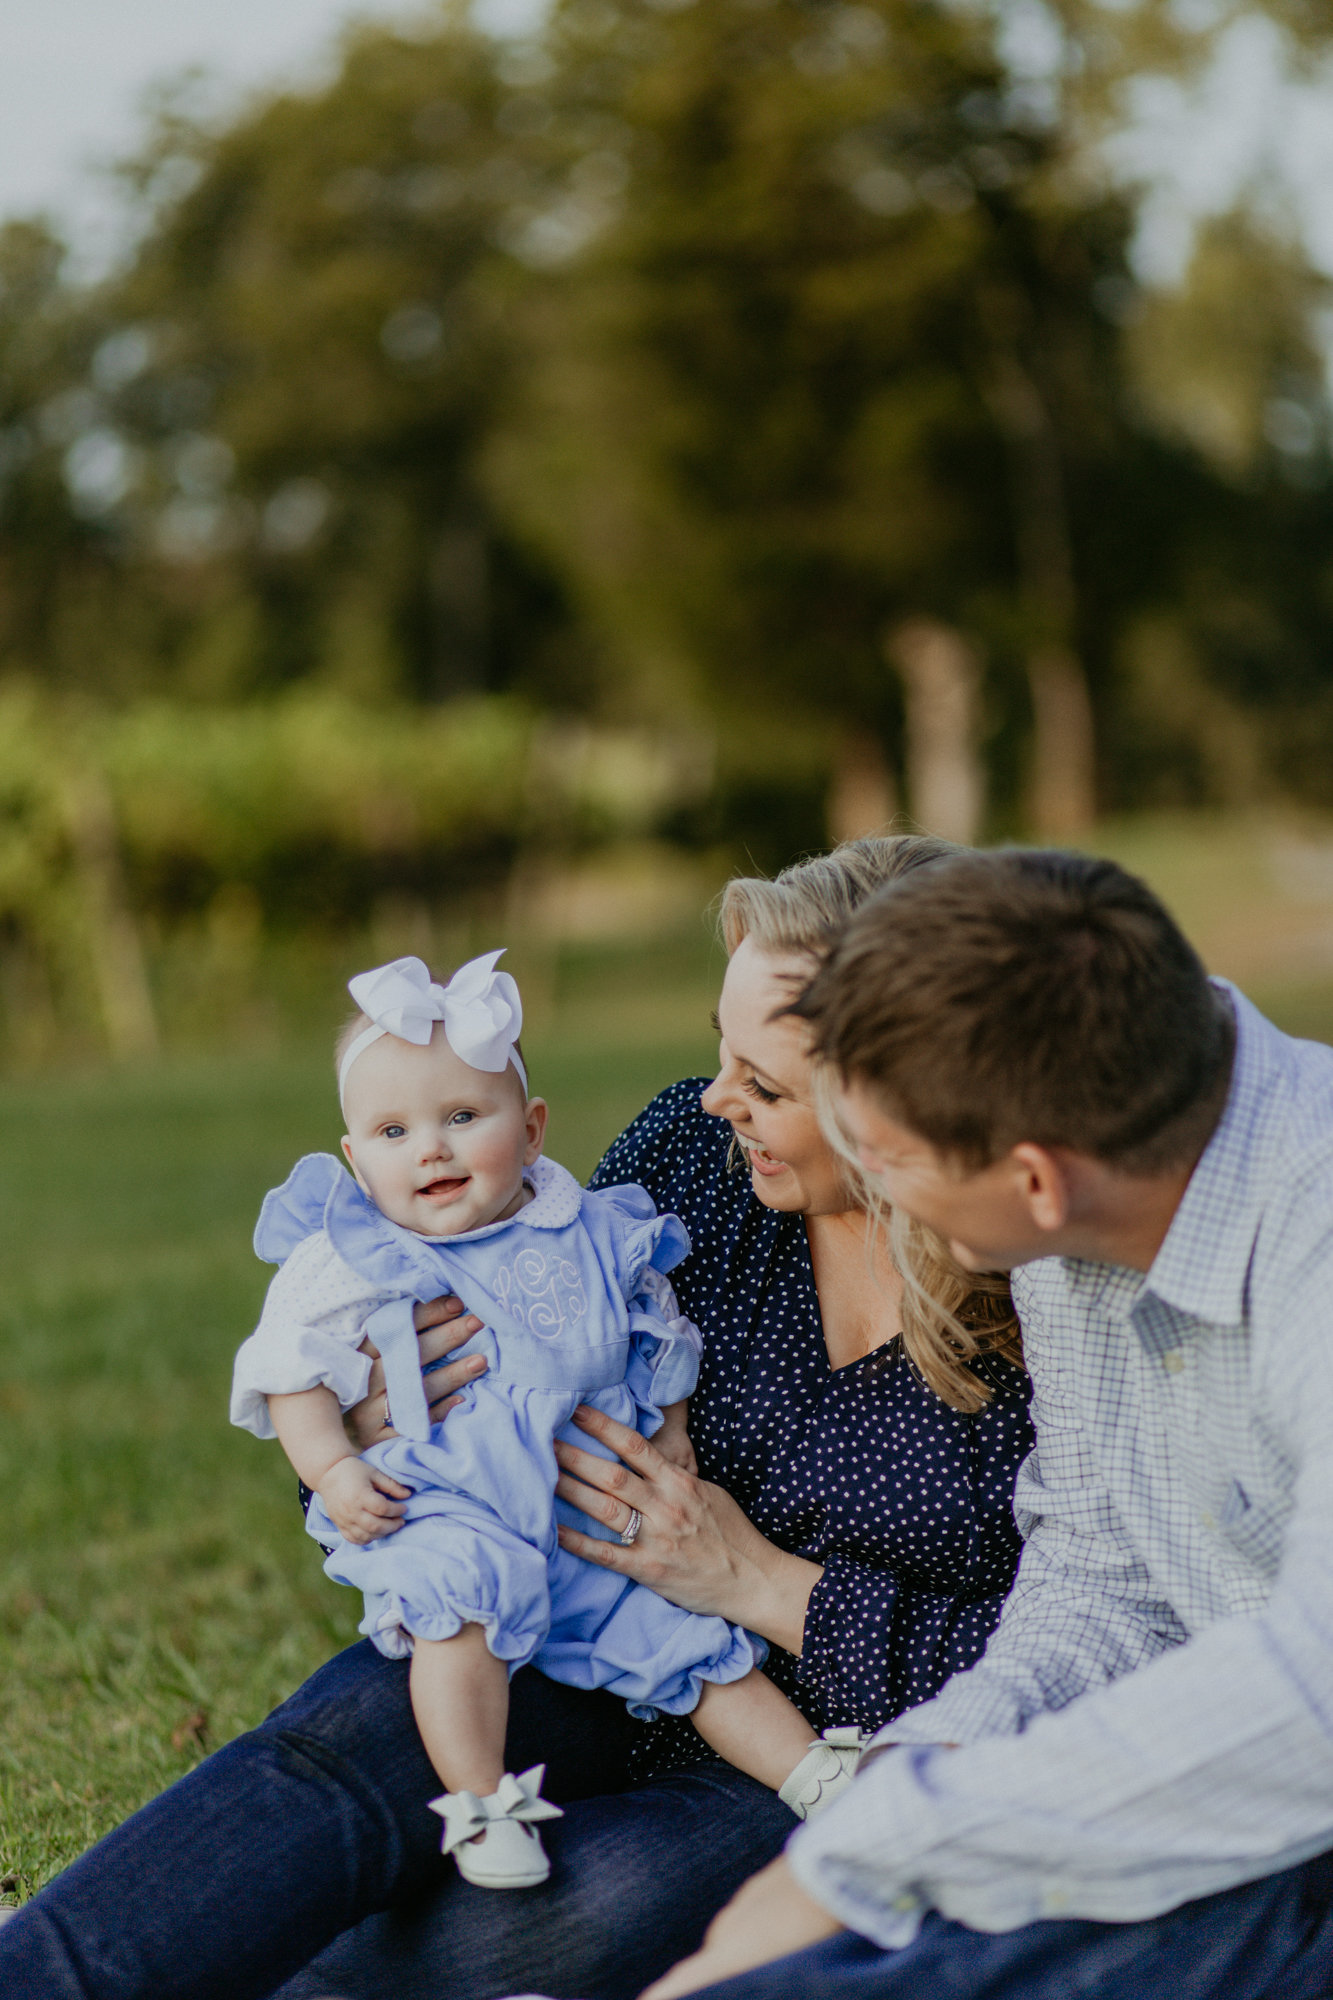 family-photographer-nashville-Darcy-Ferris-Photography24